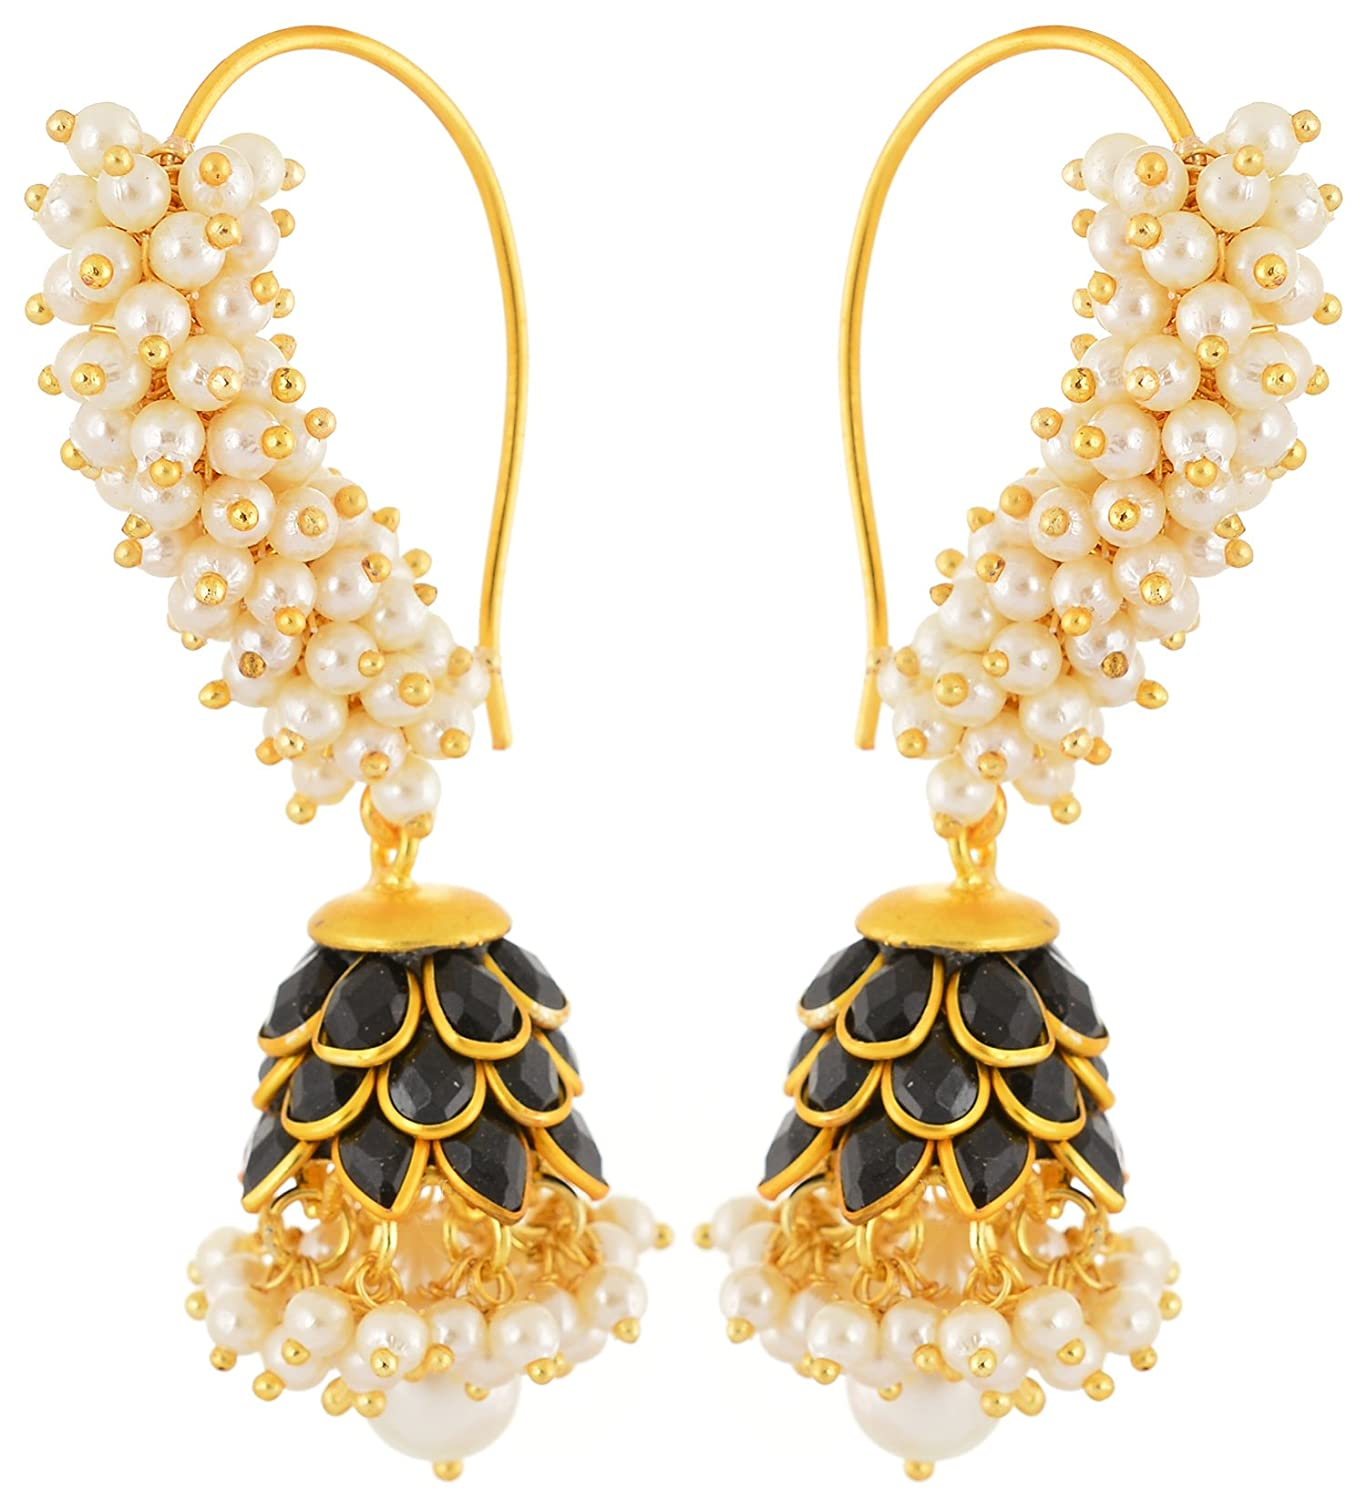 rajasthani vinayak view category detail earrings